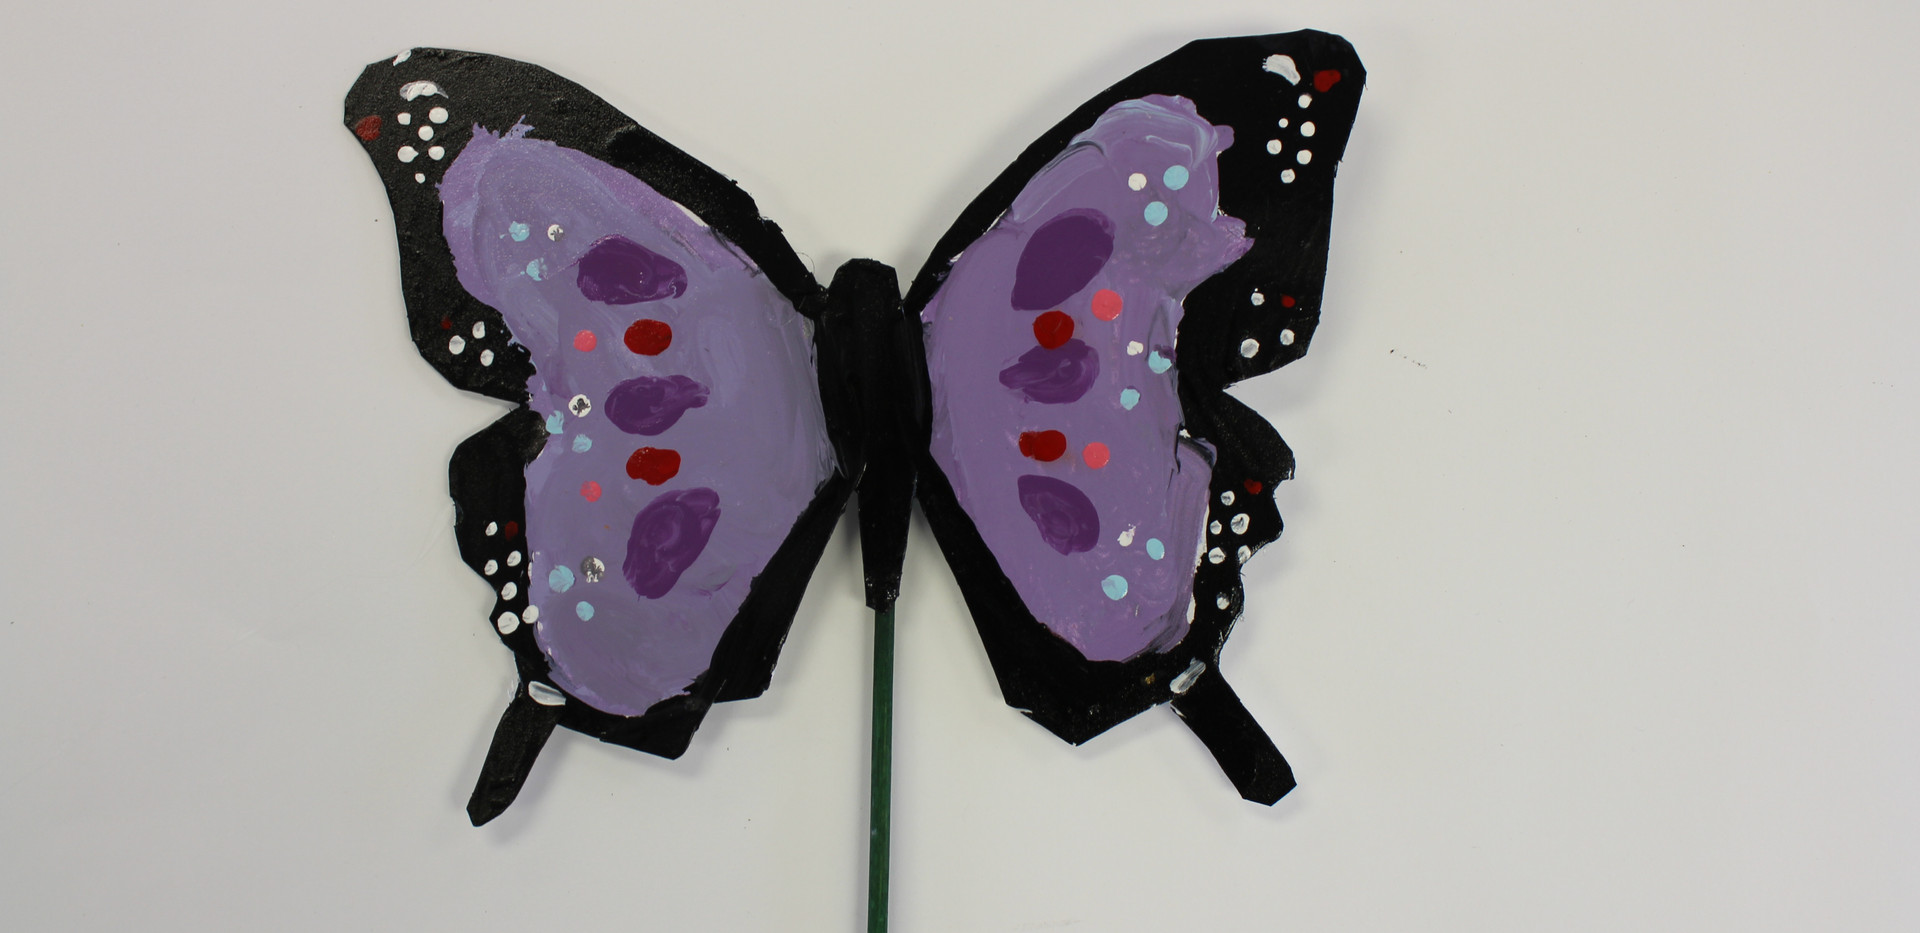 Recycled Butterfly Sculpture 4